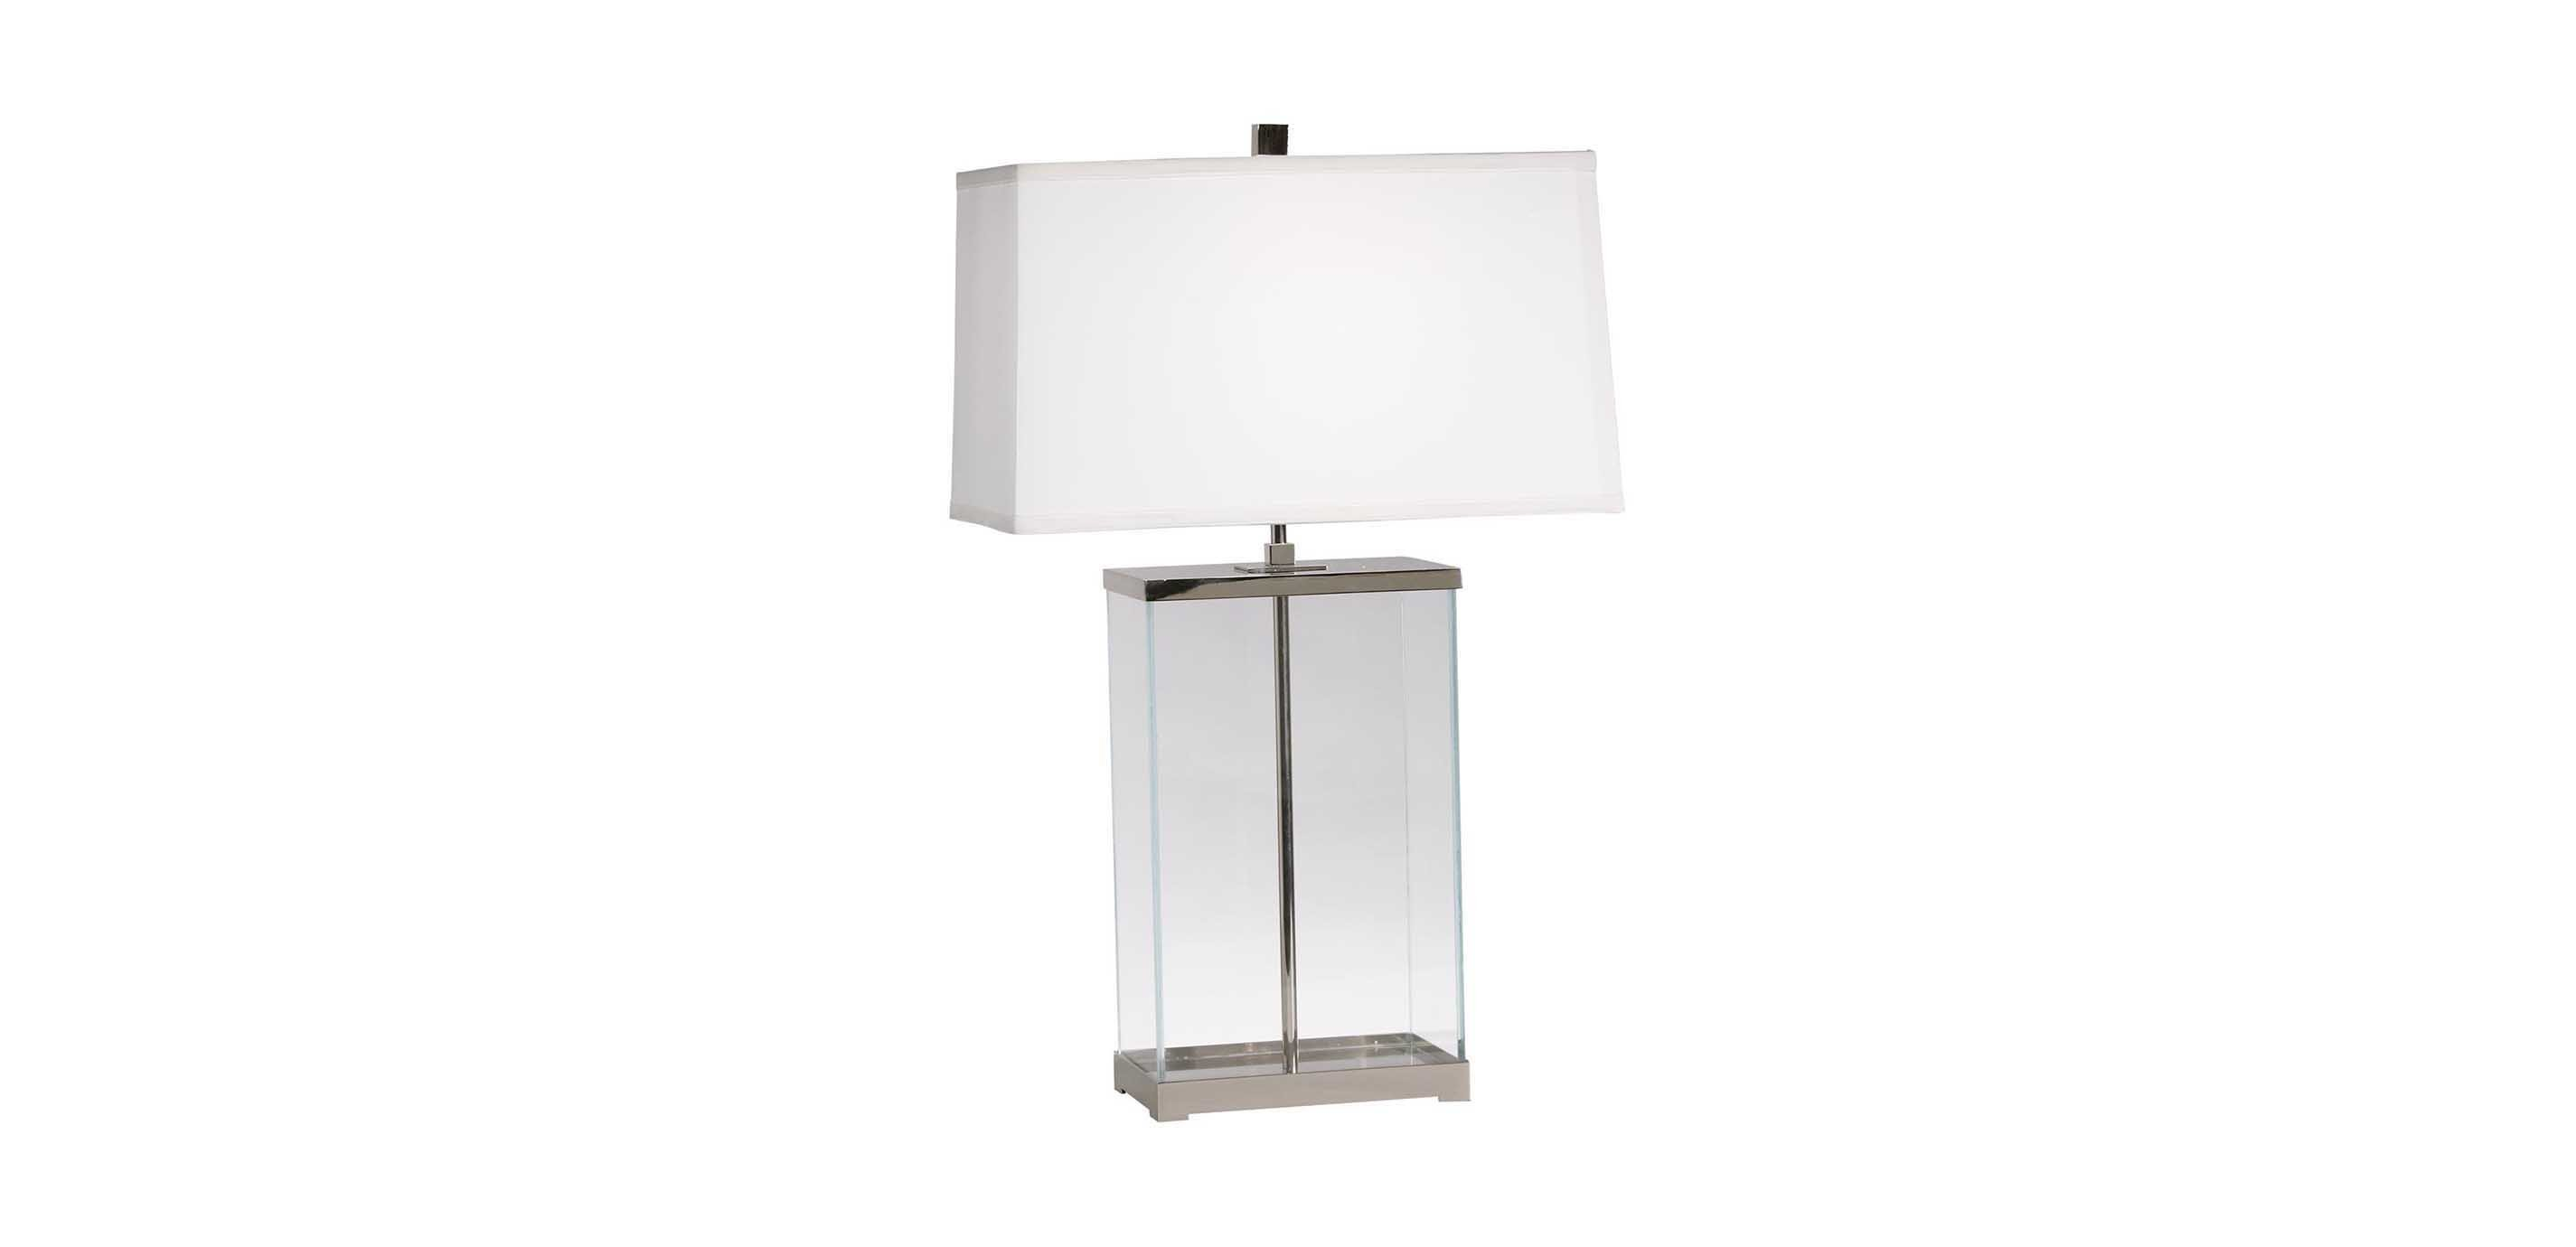 Rectangular Glass Table Lamp TABLE LAMPS